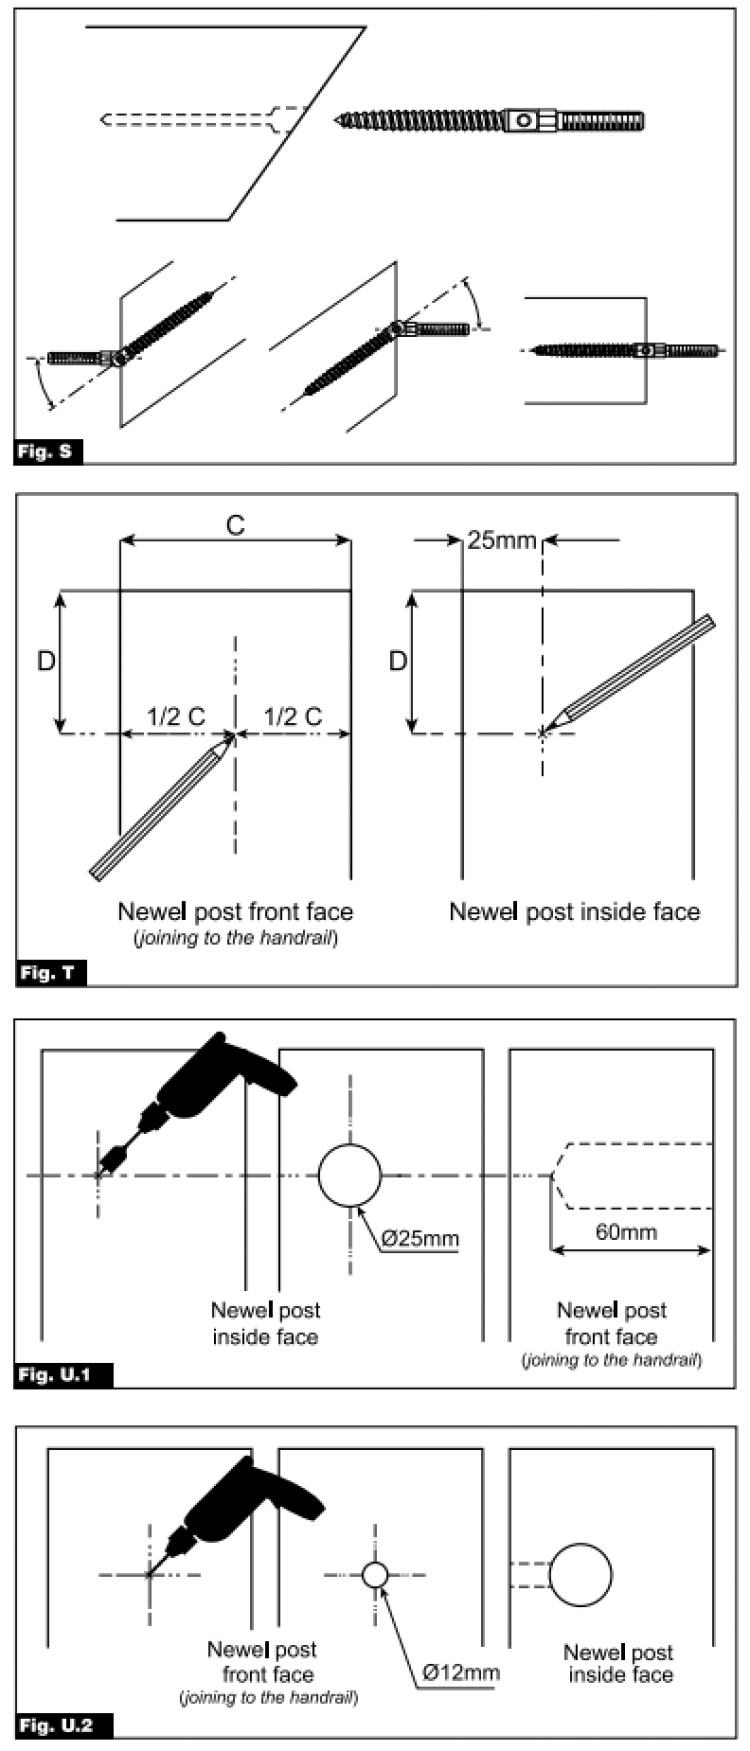 Fig S, T, U1 and U2 images. The images explain how to prepare your handrail ready to be fixed to the newel posts.